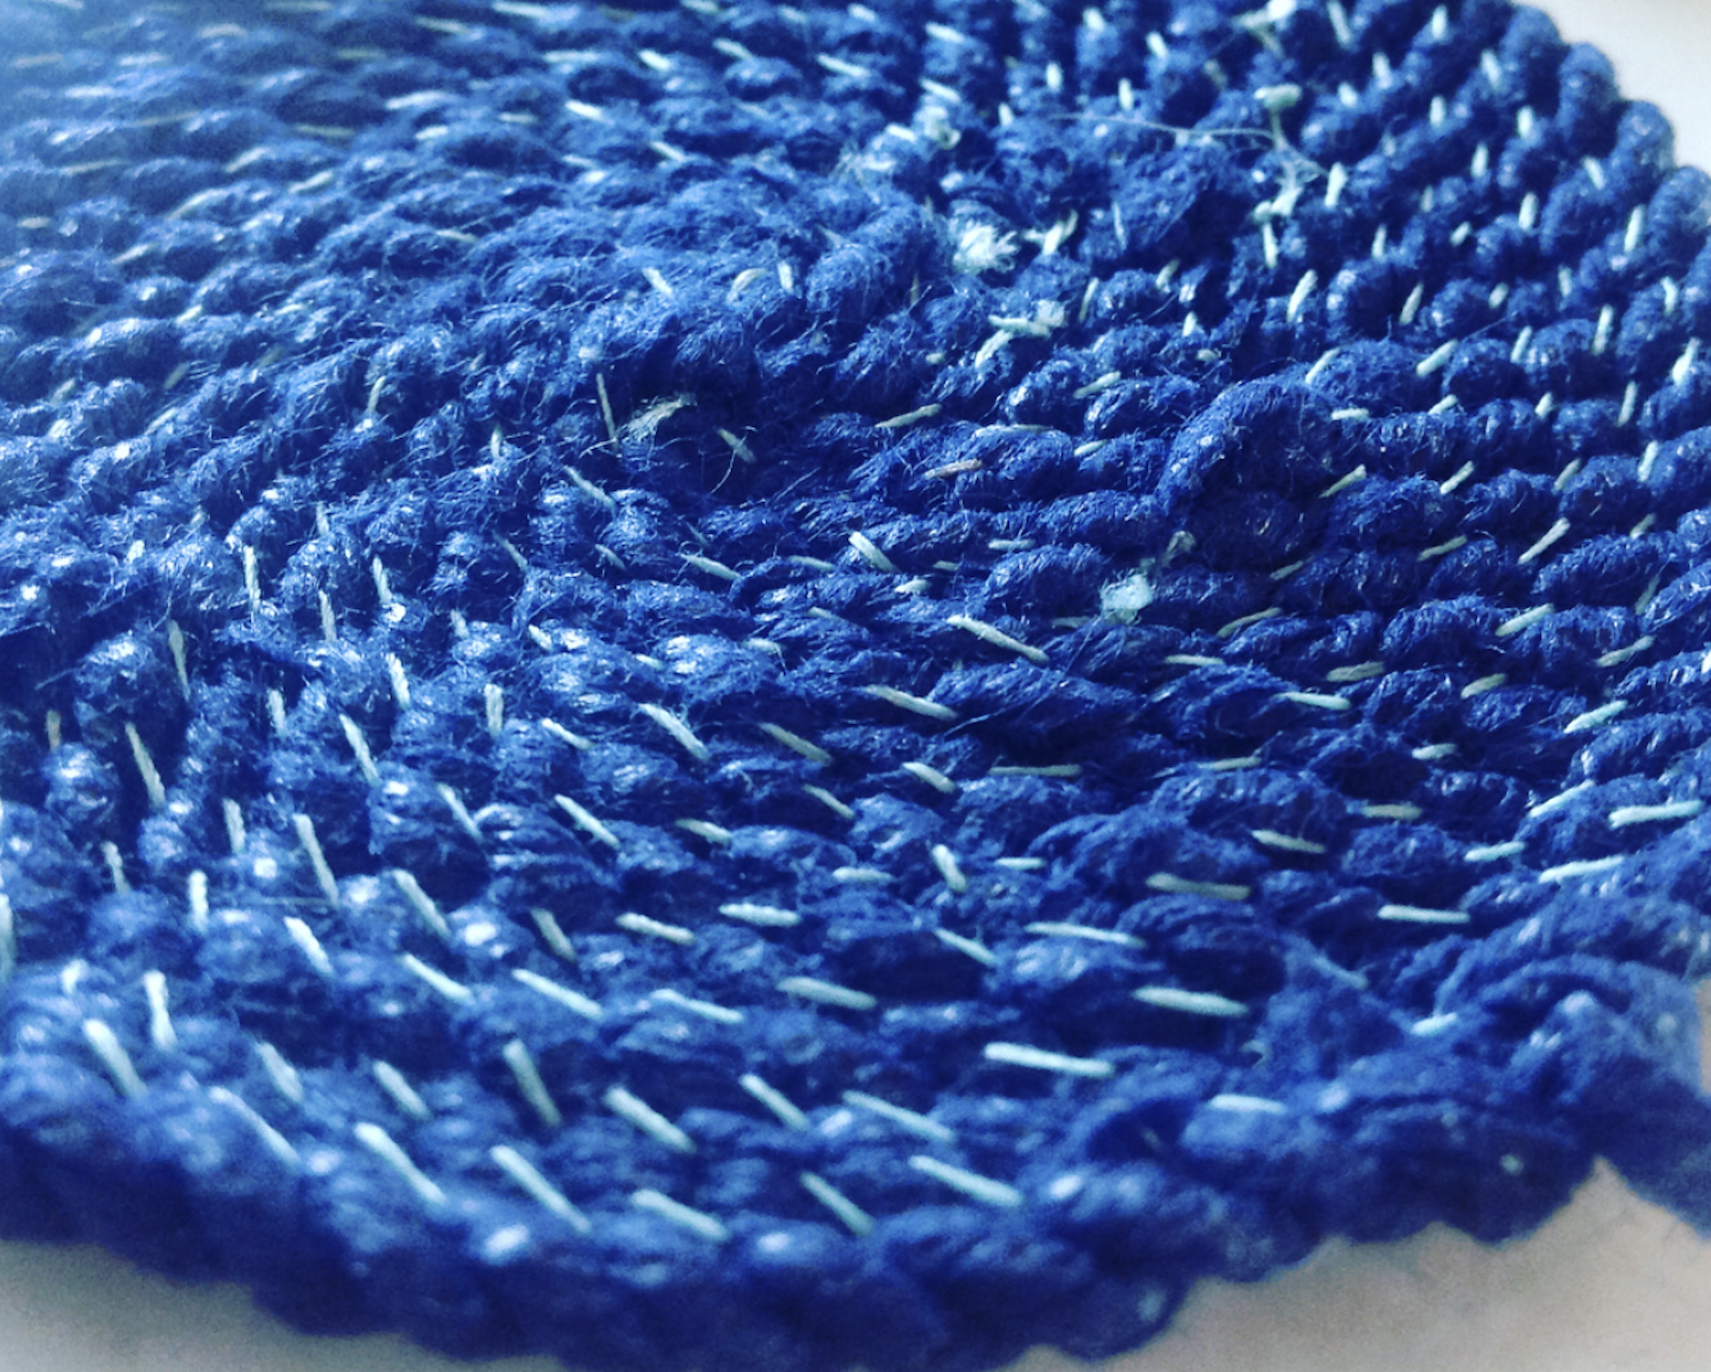 """Since learning last year how to make string from remnant clothing, I have been experimenting using this technique using disposable medical garments. This is a close-up of a piece I'm creating borne from the growing concern of the amount of textile waste being created from our society's addition to fast fashion. If this is of concern to you to, I highly recommend purchasing a copy of """"Loved Clothes Last"""" - the second fanzine produced by UK based  Fashion Revolution ."""